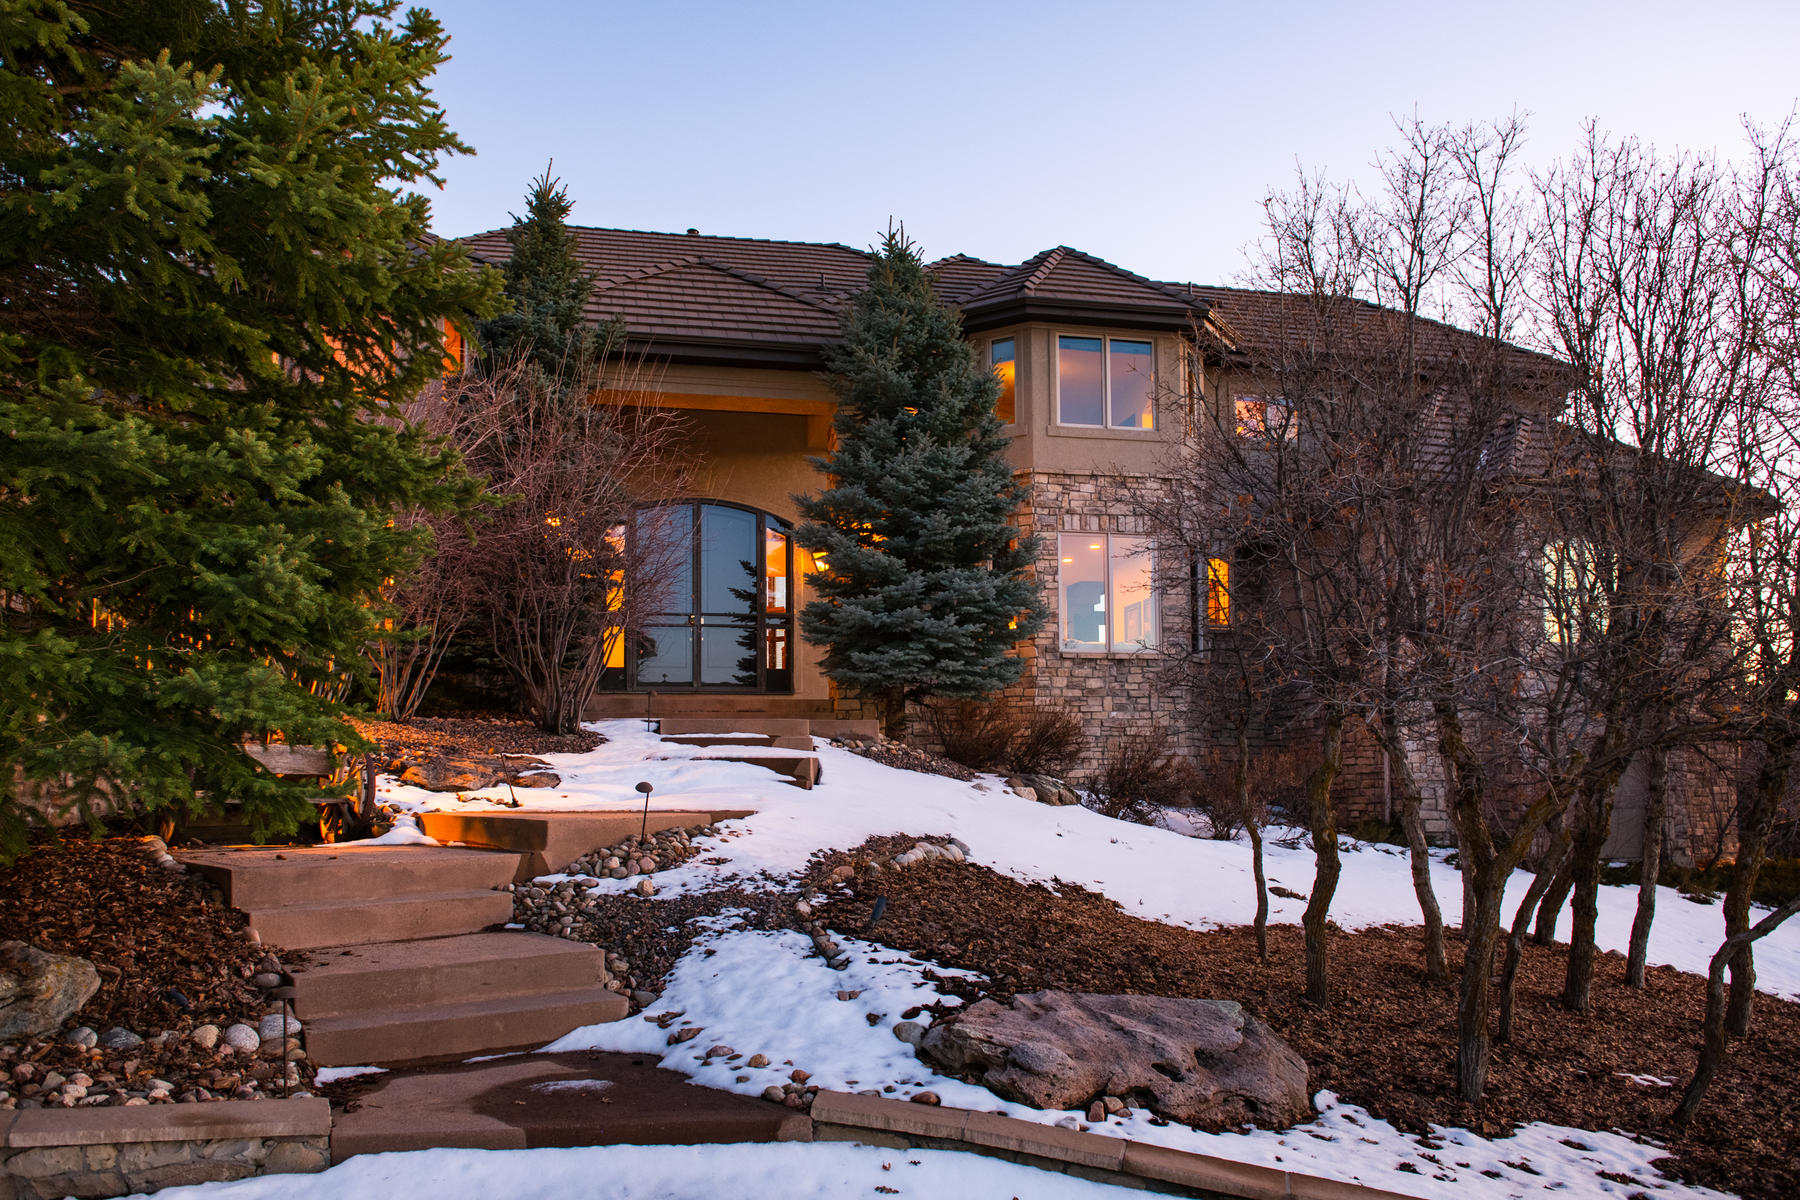 Single Family Homes for Sale at Life here is grand! Welcome home to this gated scenic 70+ acre equestrian estate 2056 Elk View Road Larkspur, Colorado 80118 United States